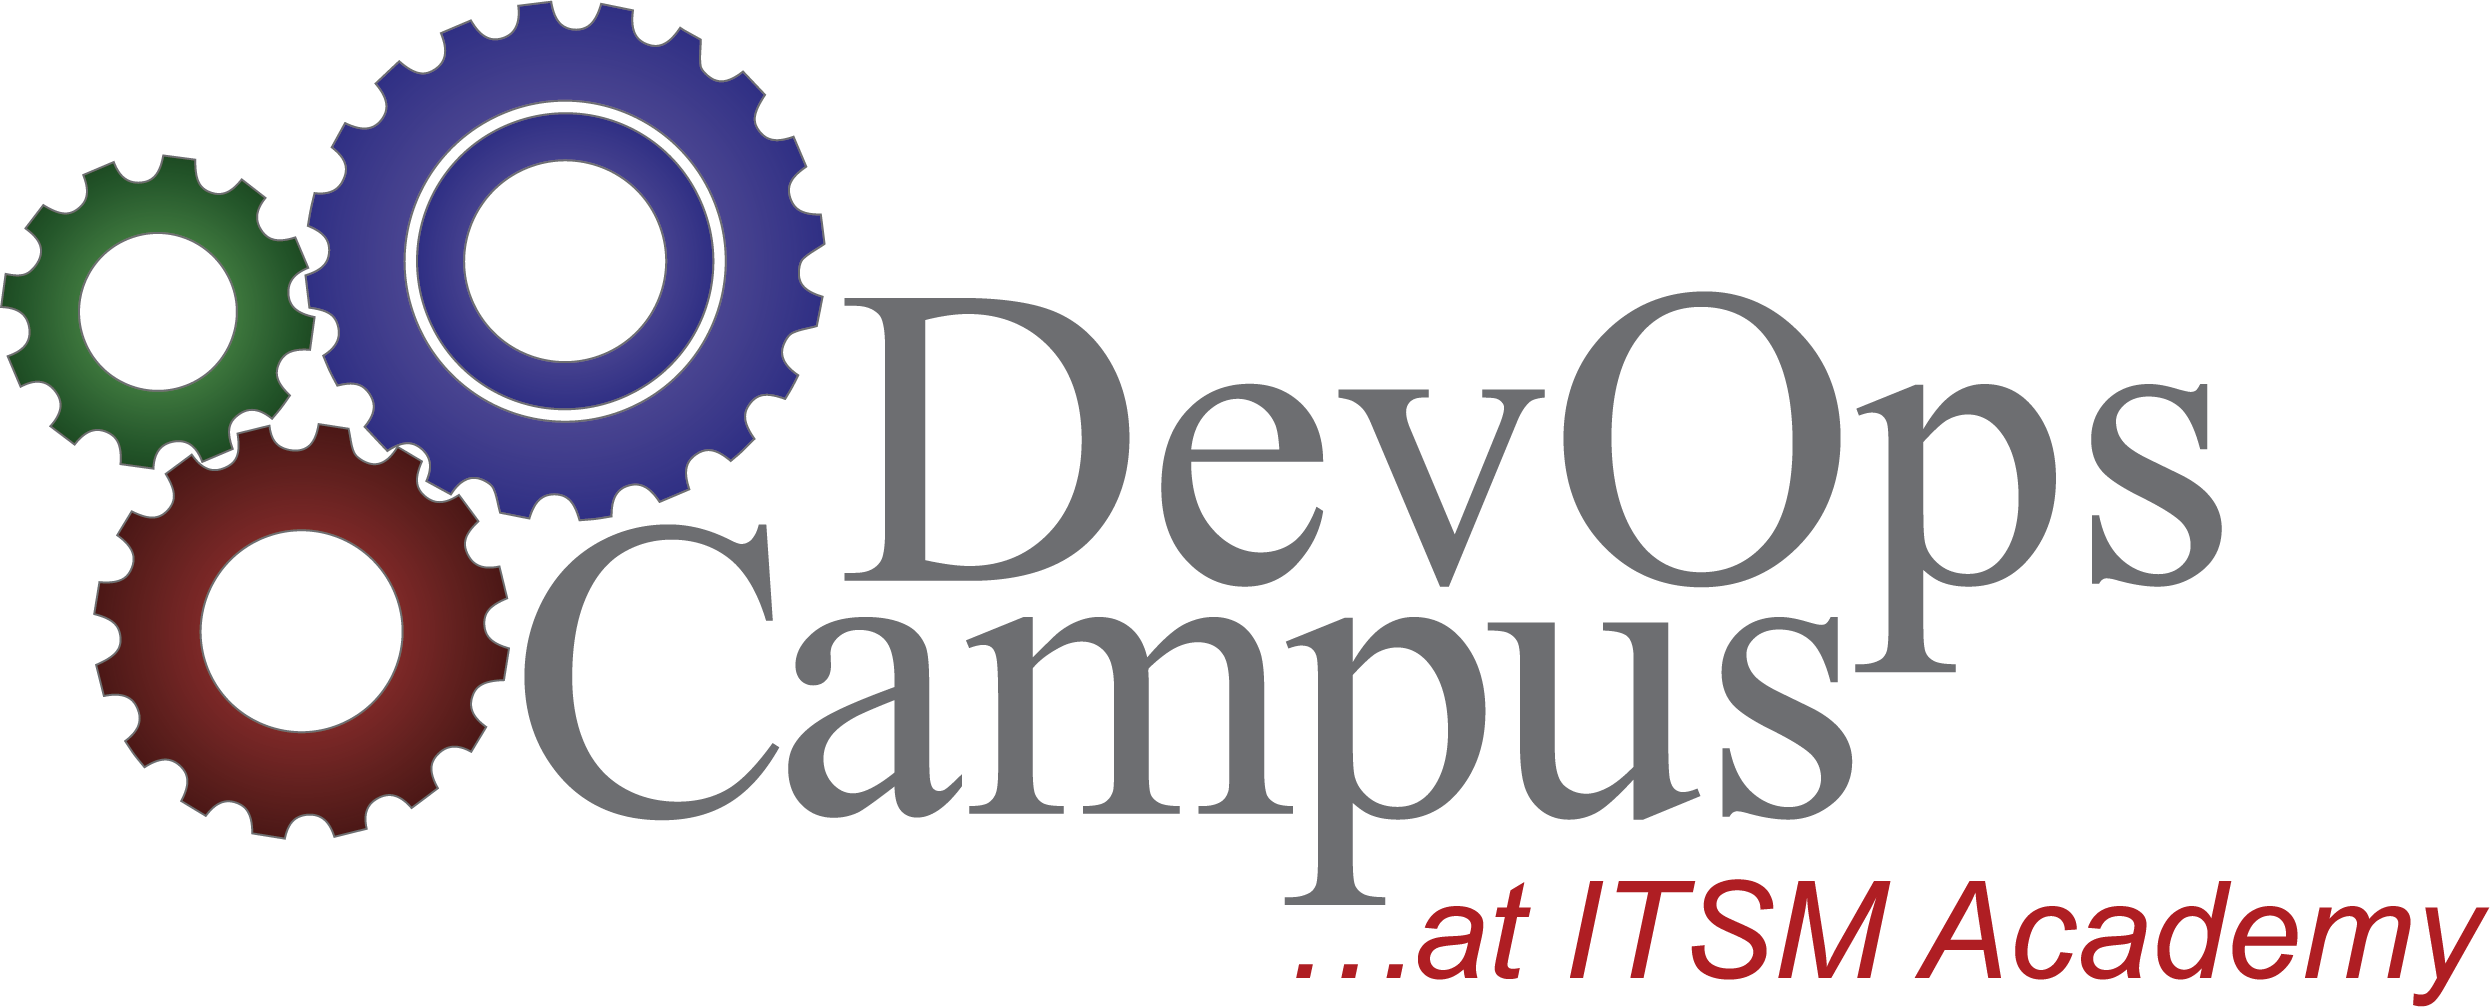 devopscampus-color.png